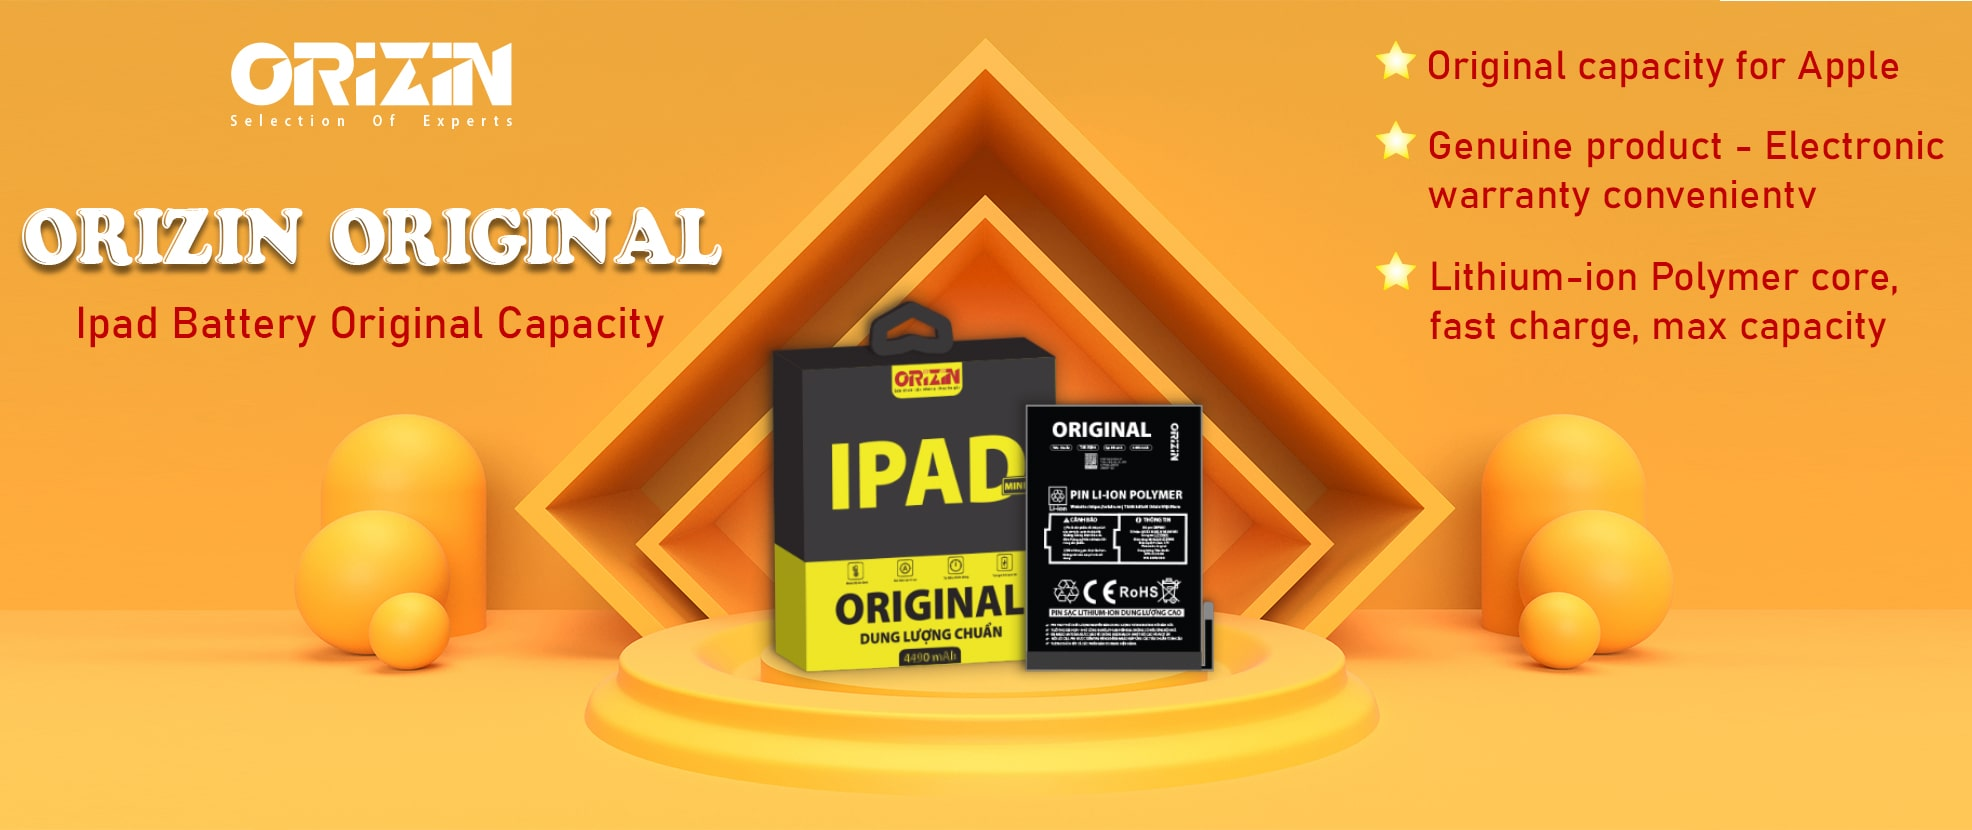 Orizin Original Ipad Battery Banner